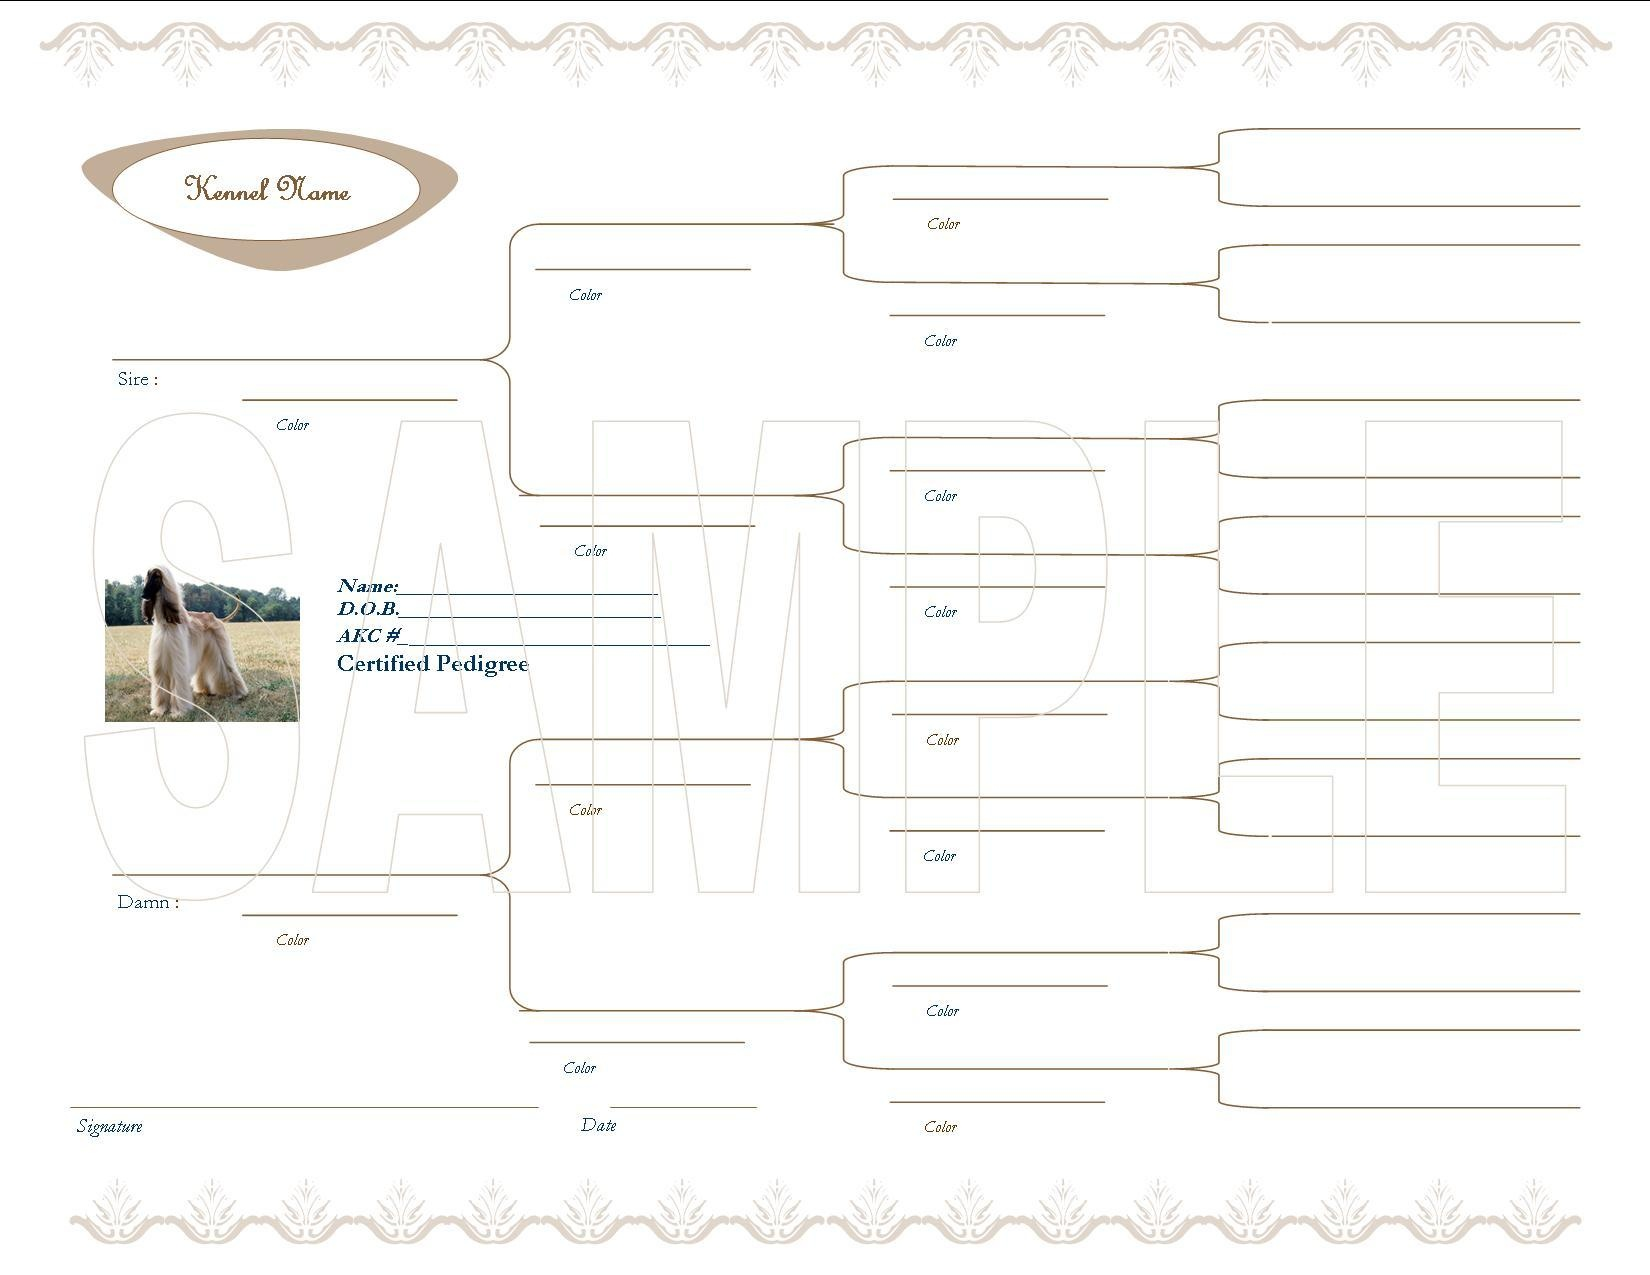 Pedigree Certificate Template Free. Family Tree Template 3 - Free Printable Dog Pedigree Generator